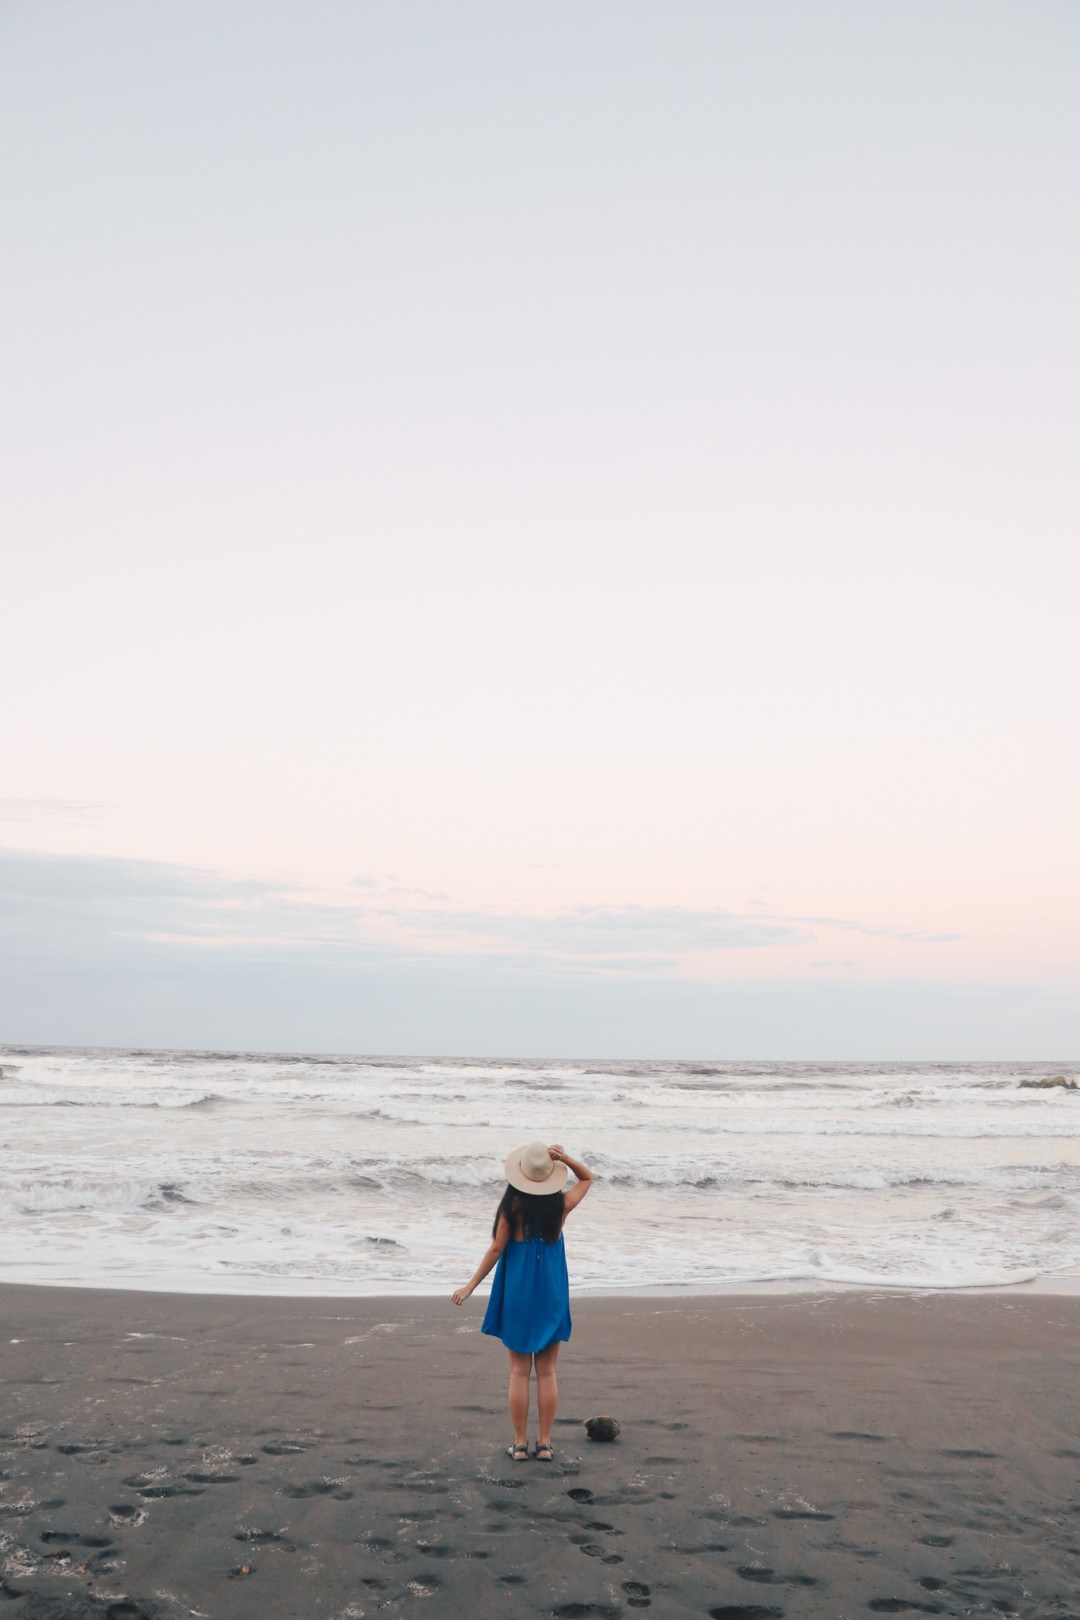 My Outfit of the Day on the beach in Costa RIca